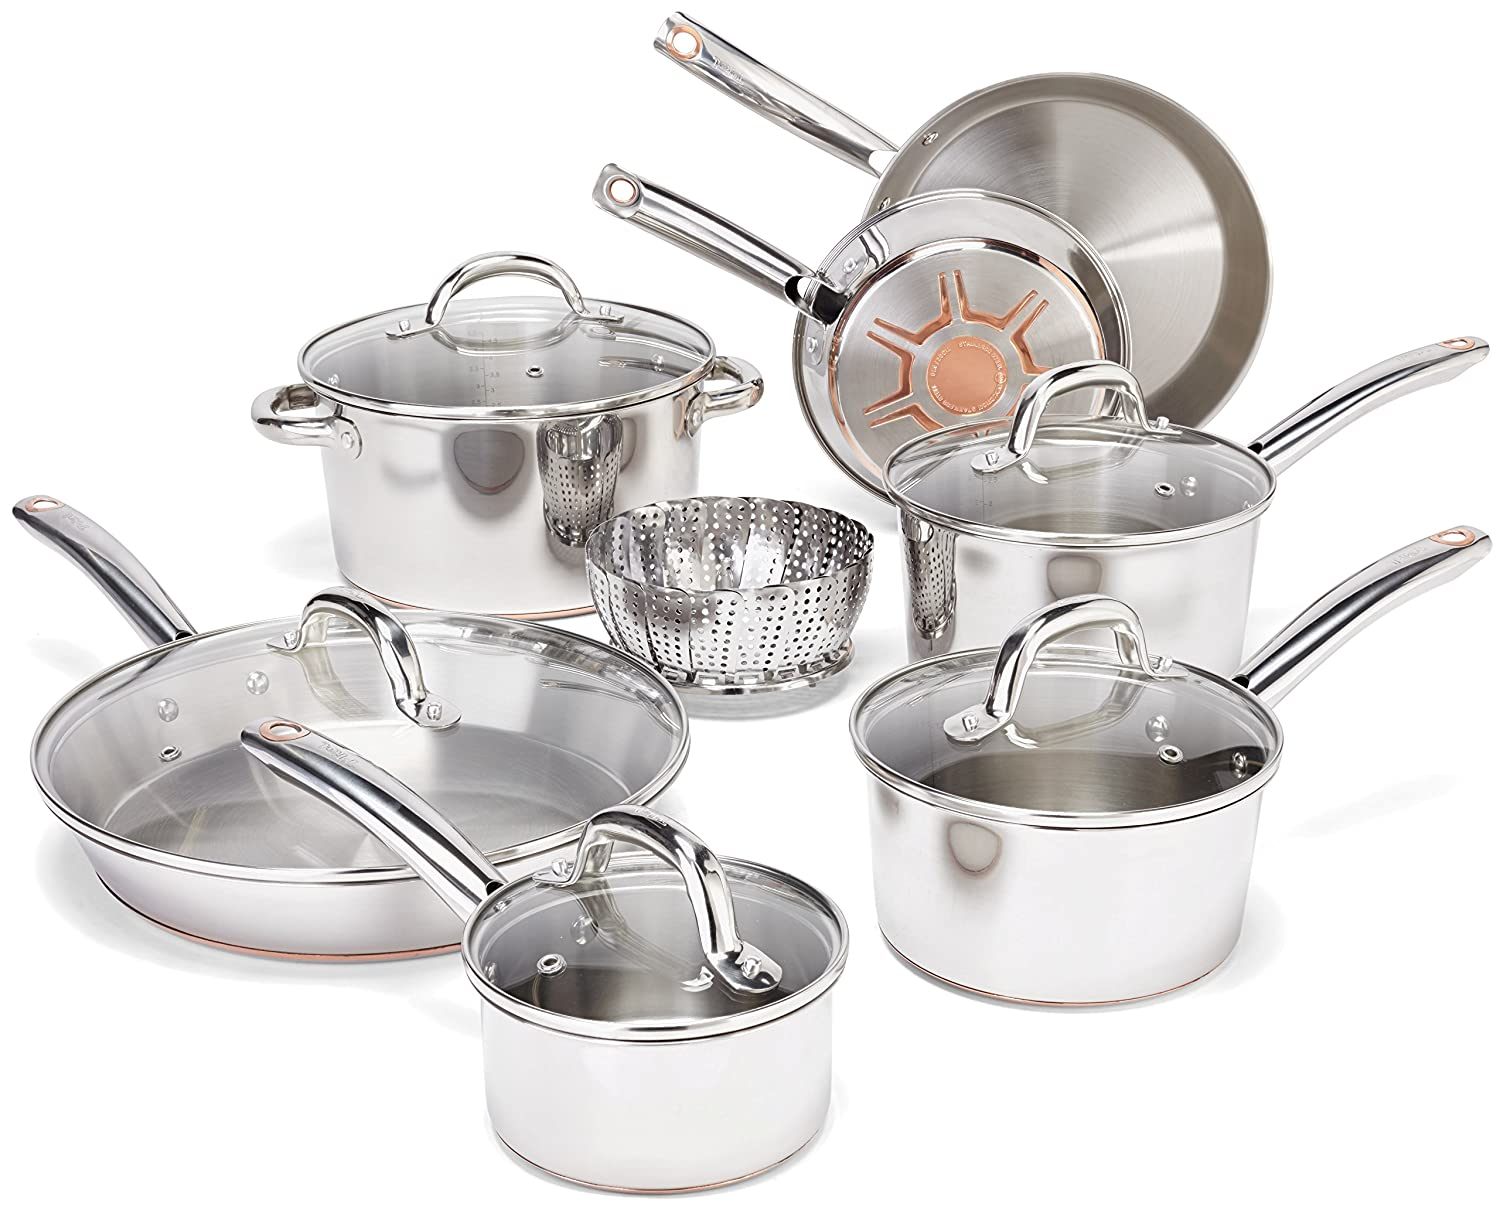 Best Stainless Steel Cookware Reviews 2019: Top 5+ Recommended 2 #cookymom